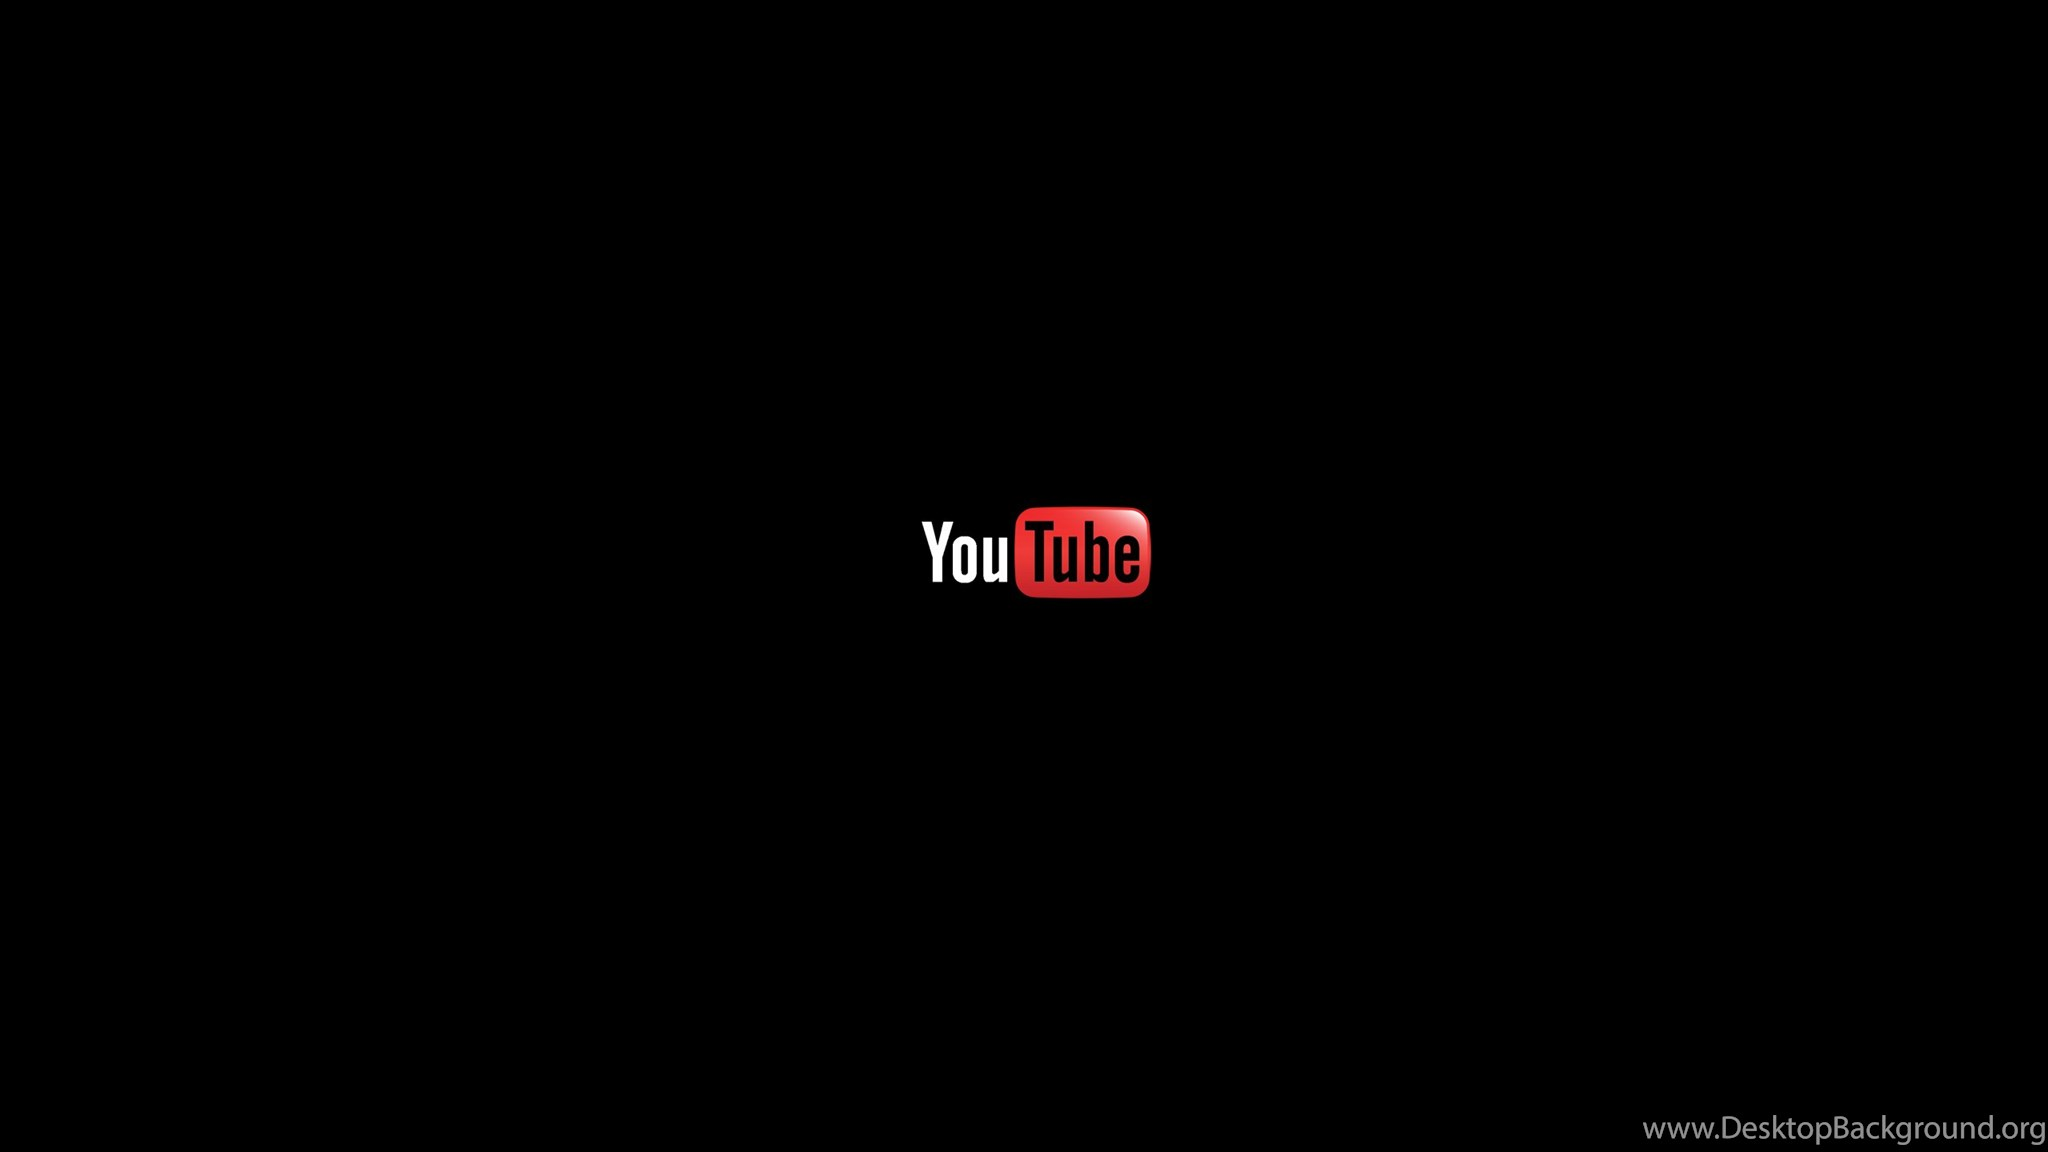 Youtube Backgrounds Wallpapers Desktop Background